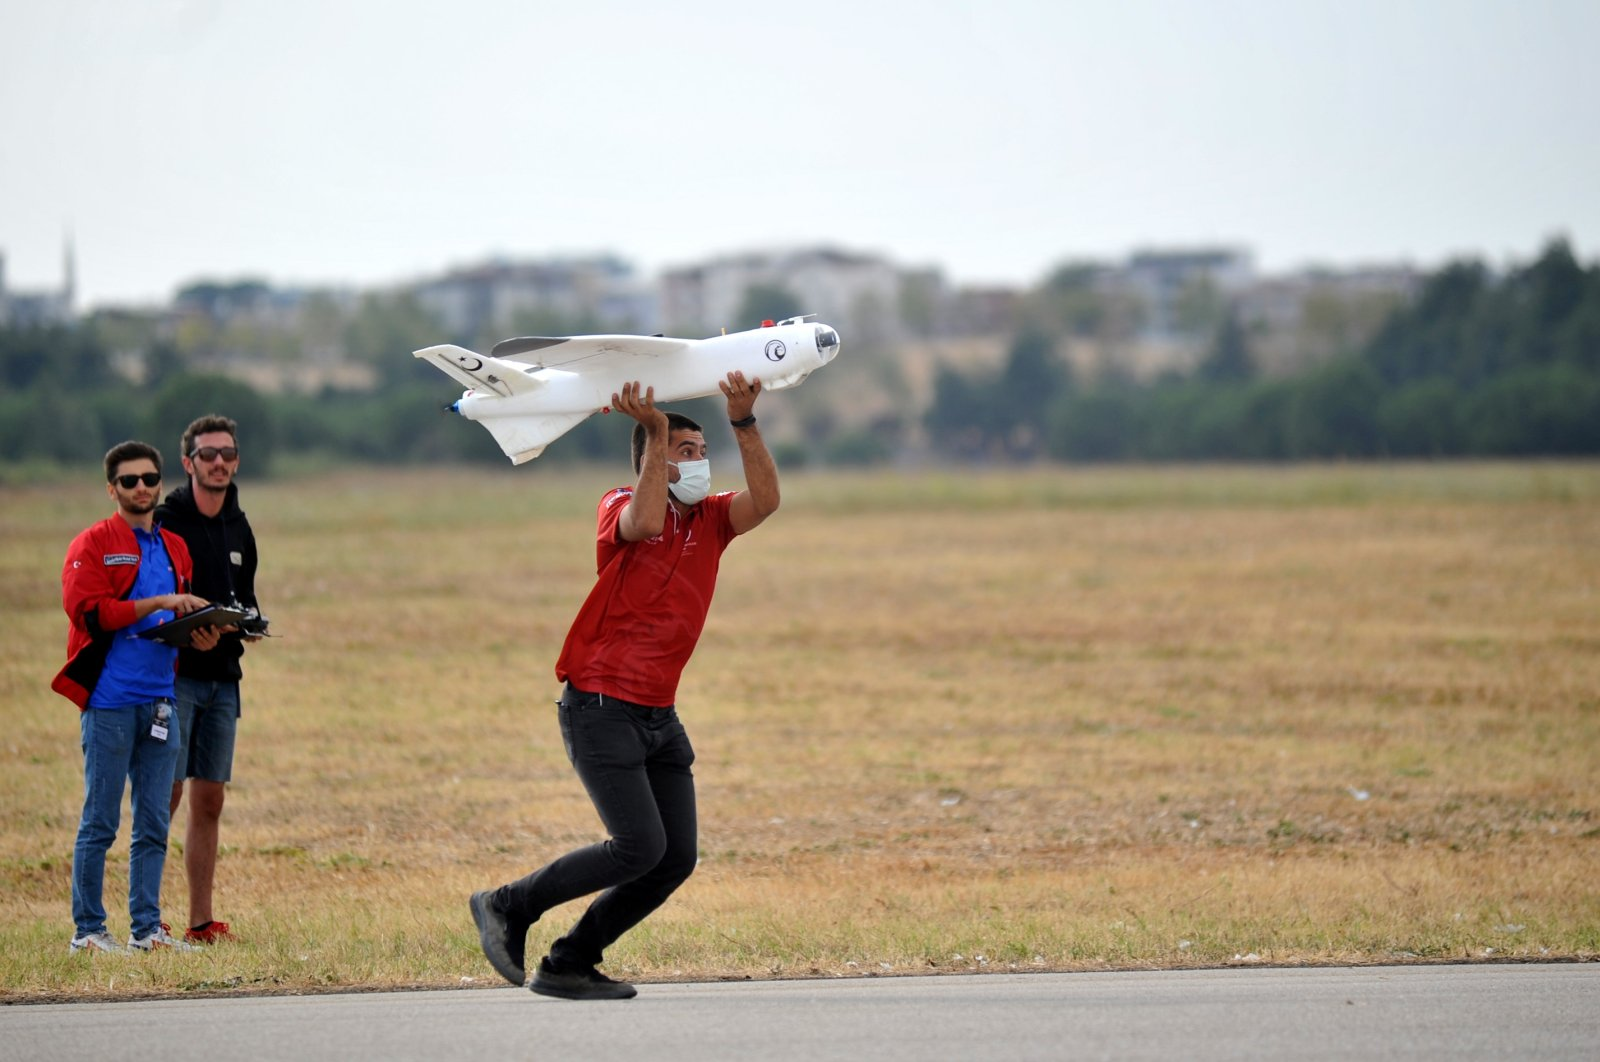 A student prepares to send up an unmanned aerial vehicle during a competitionas part ofTurkey's largest aerospace and technology event Teknofest in the northwestern province of Bursa, Turkey, Sept. 7, 2021. (DHA Photo)